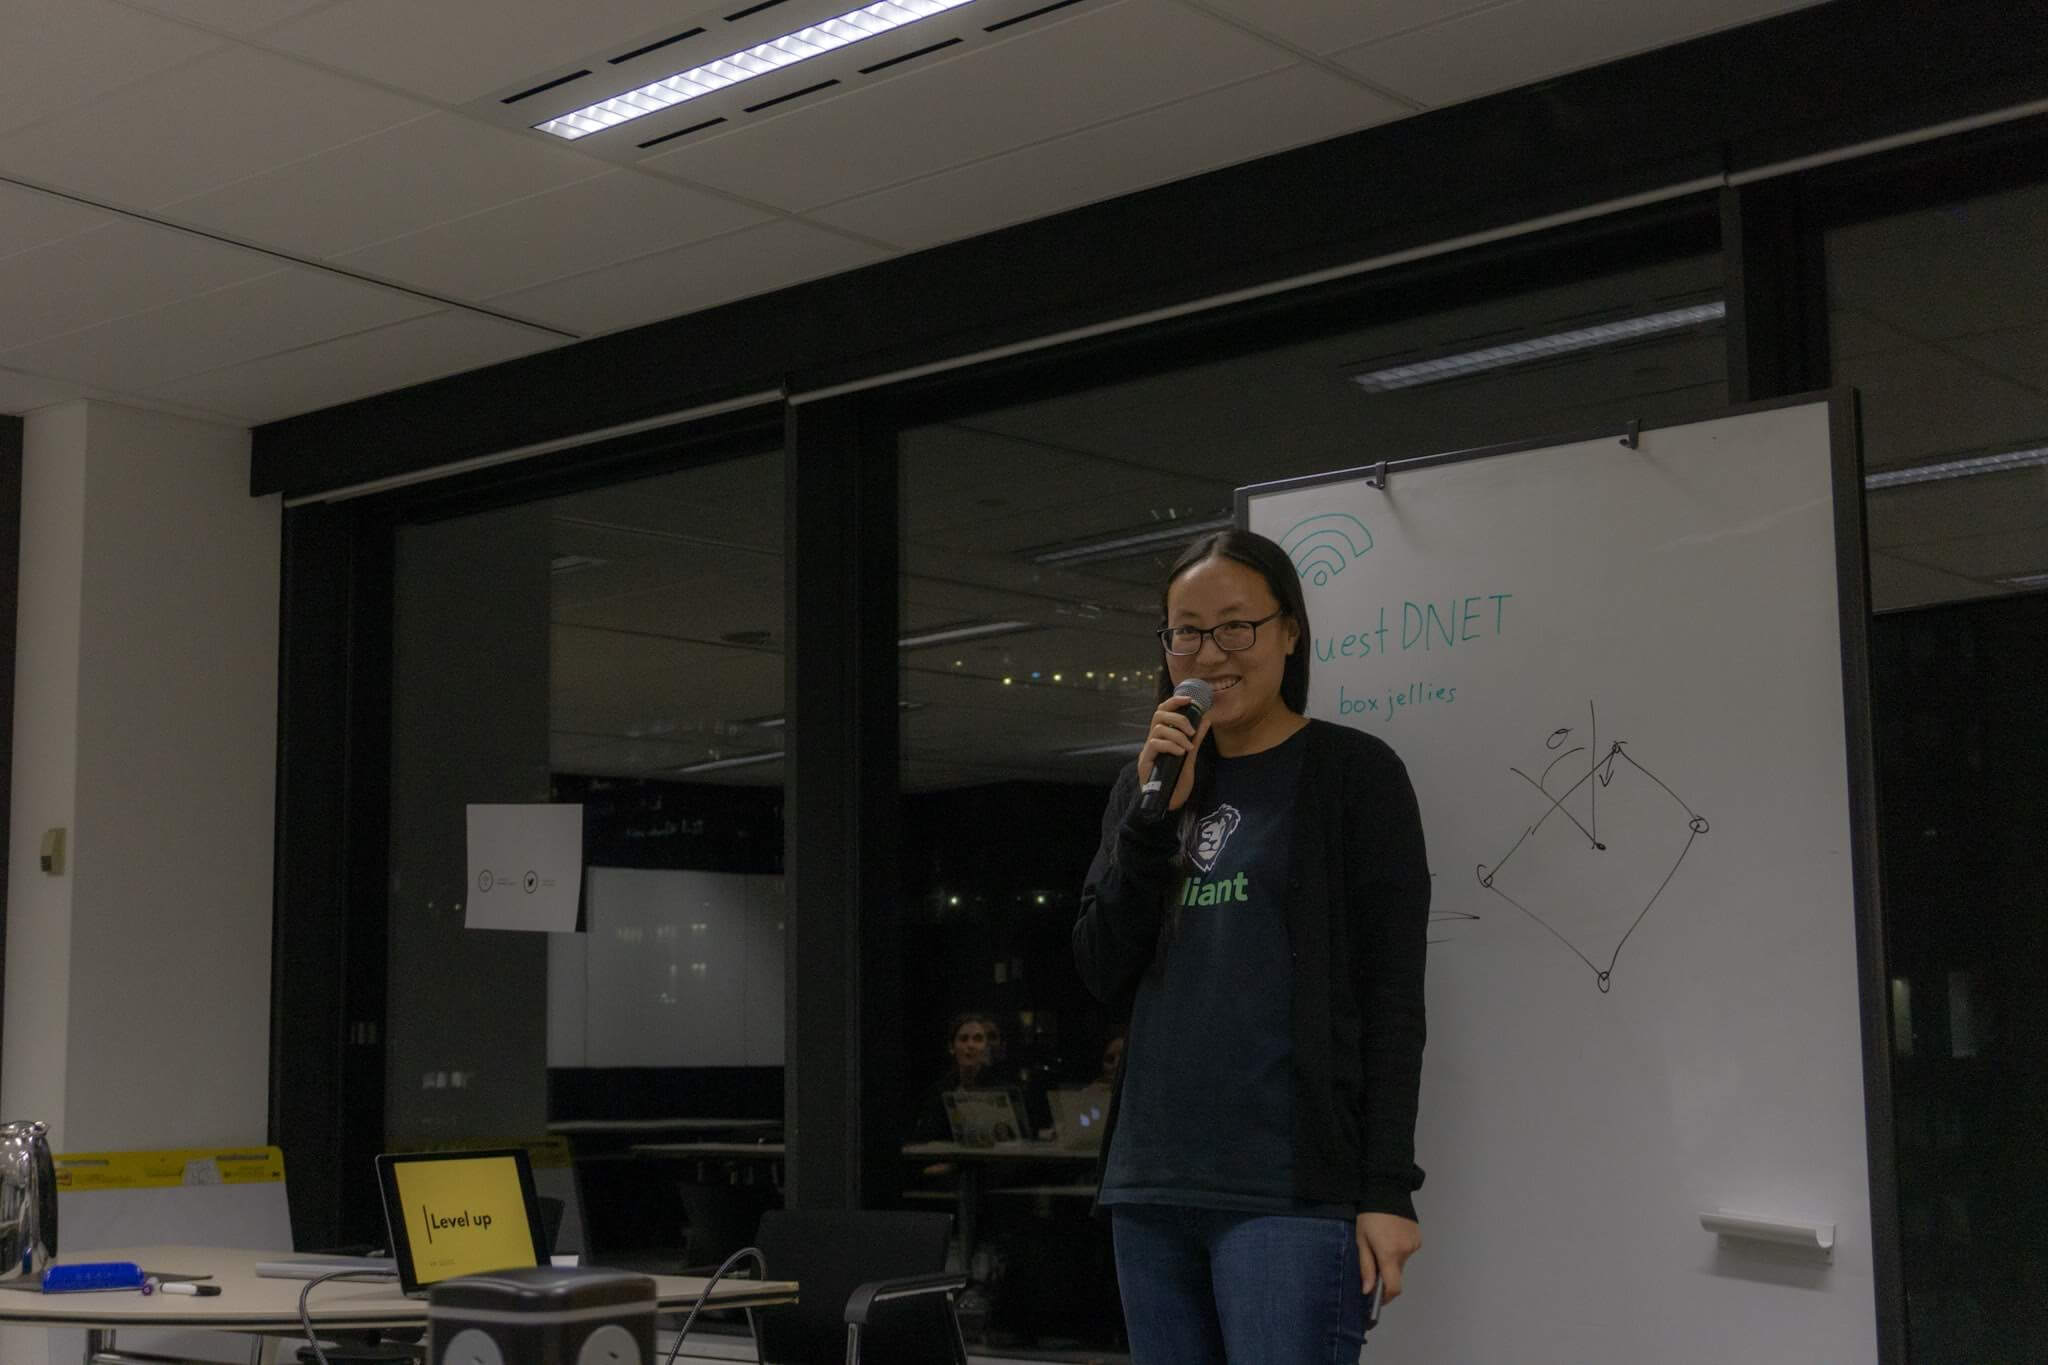 A woman wearing glasses, holding a microphone, standing next to a whiteboard